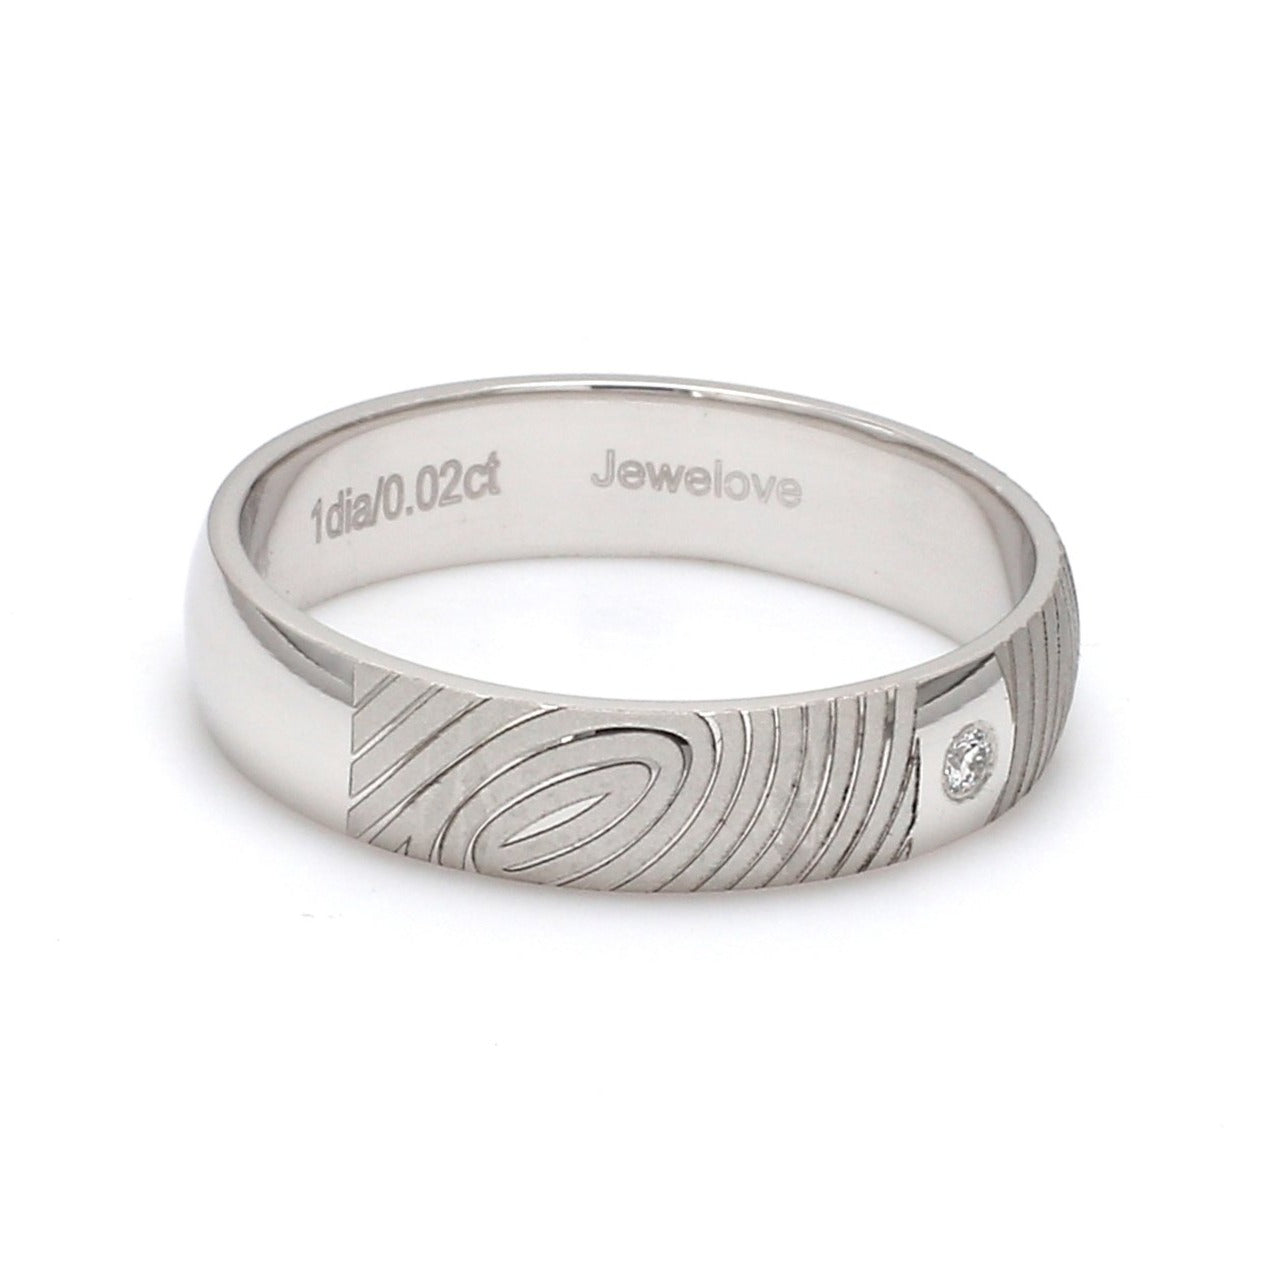 Side View of Customized Fingerprint Engraved Platinum Rings with Diamonds for Men